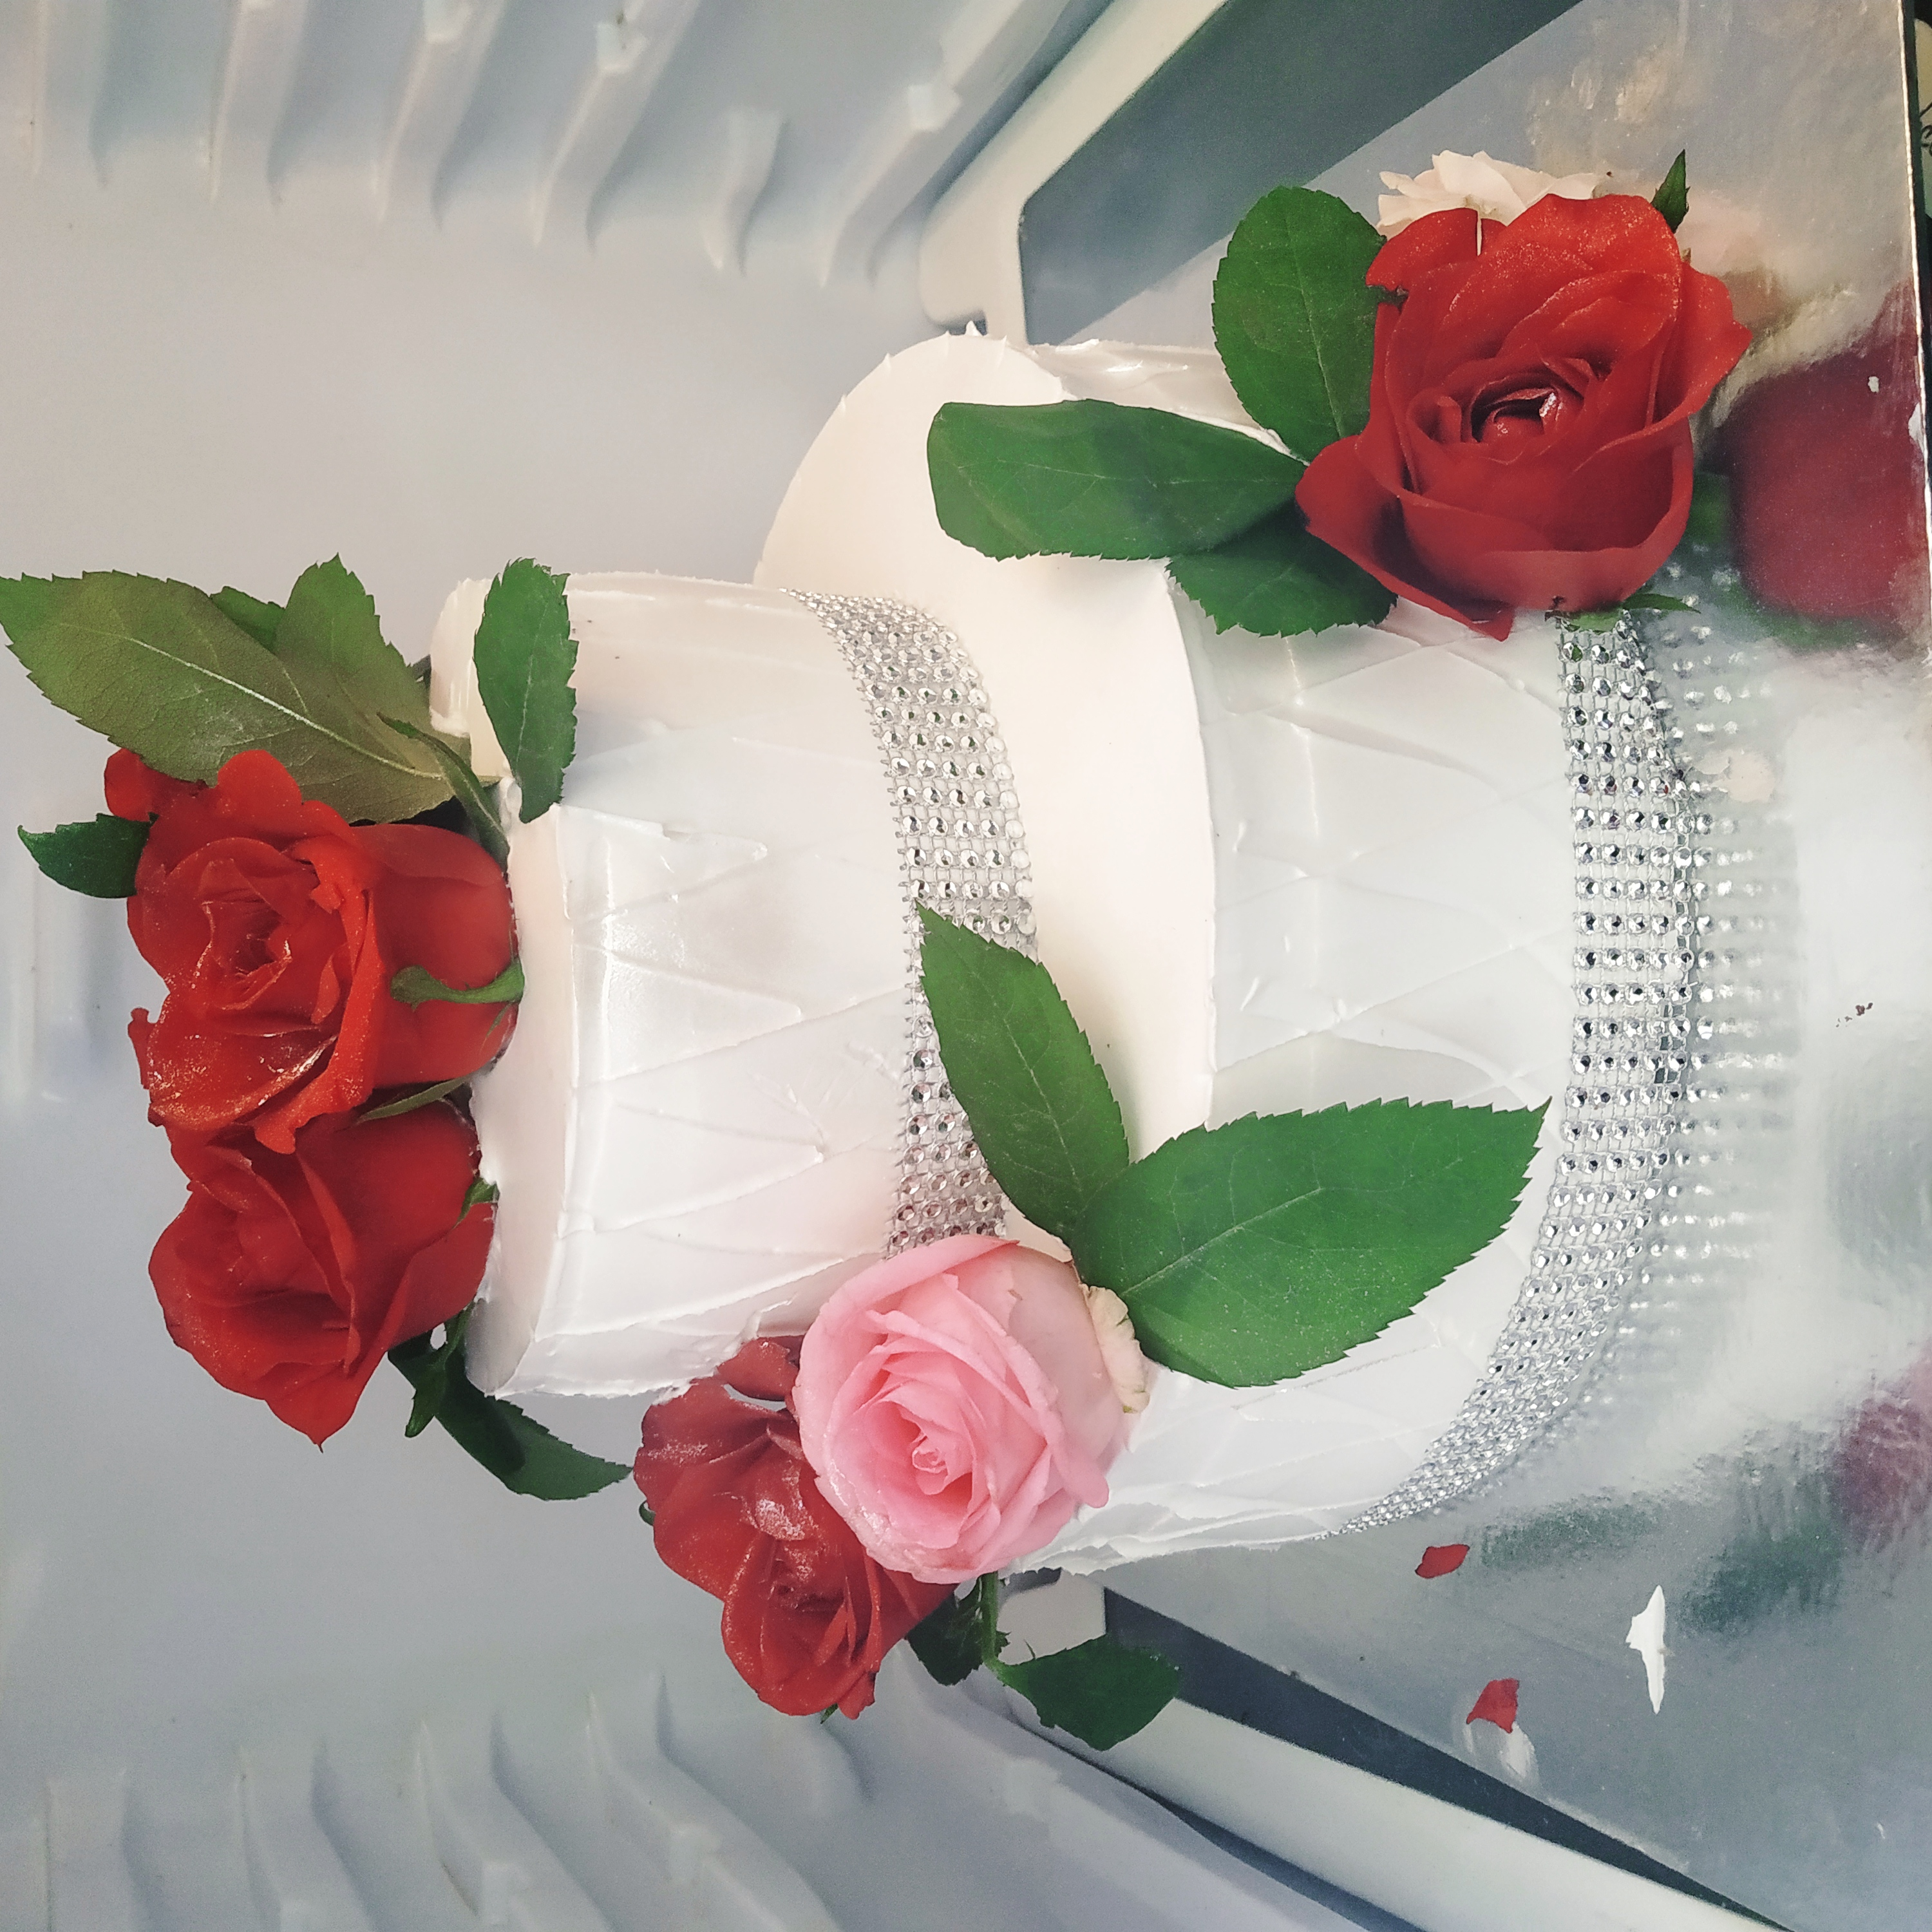 Floral Cakes (2.5 Kg,Chocolate)